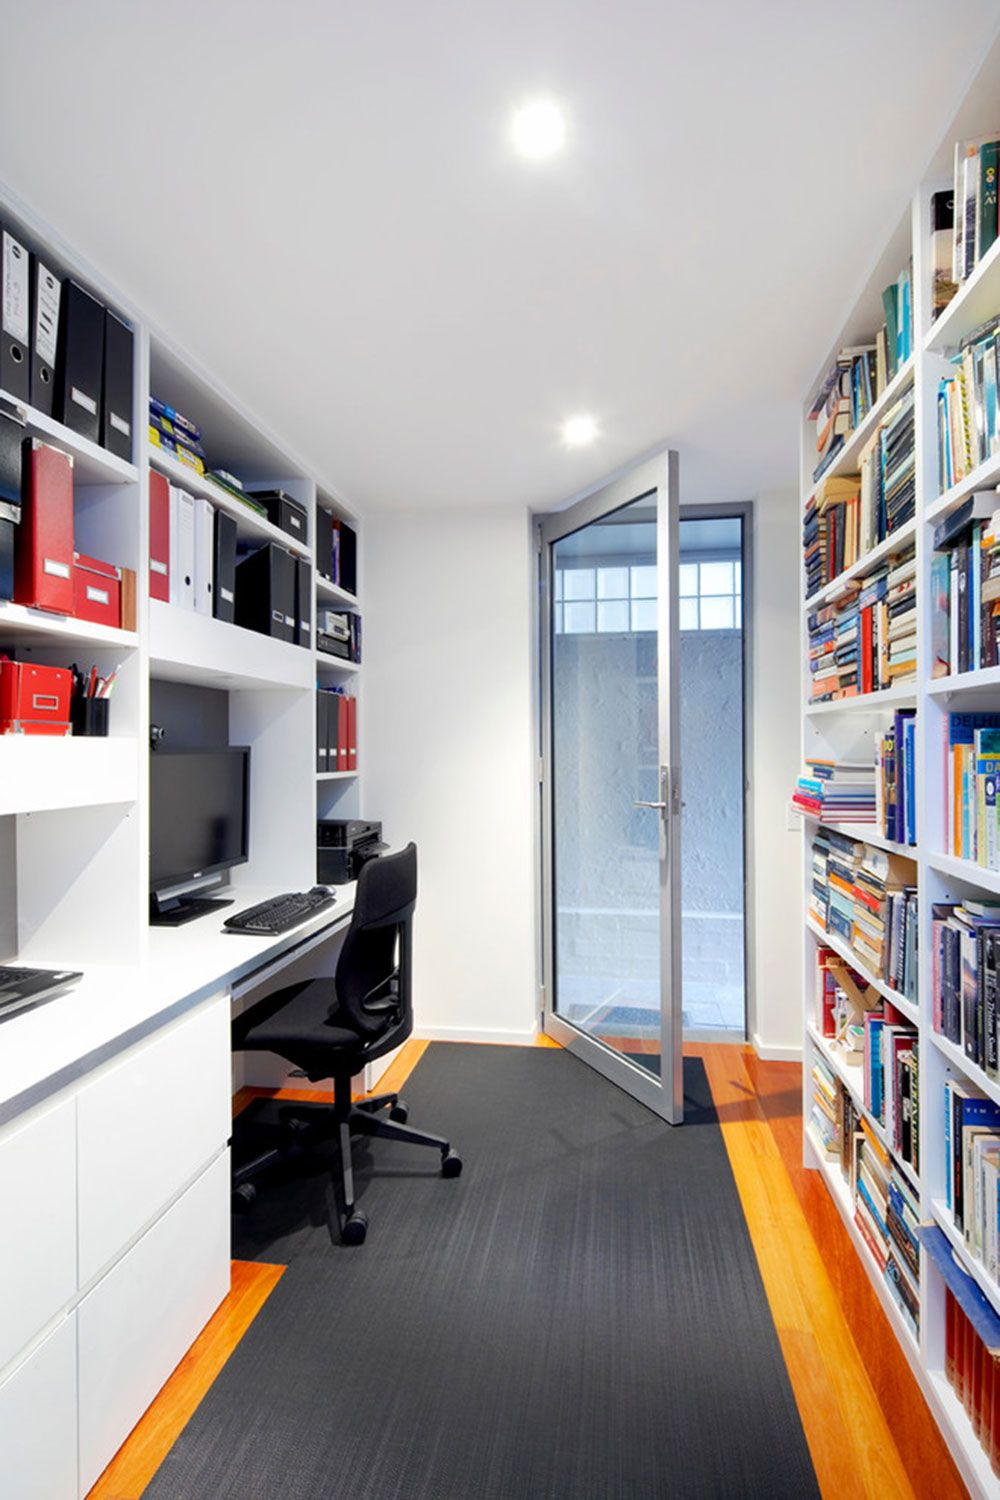 Colour For Study Room: Decorating Your Study Room With Style